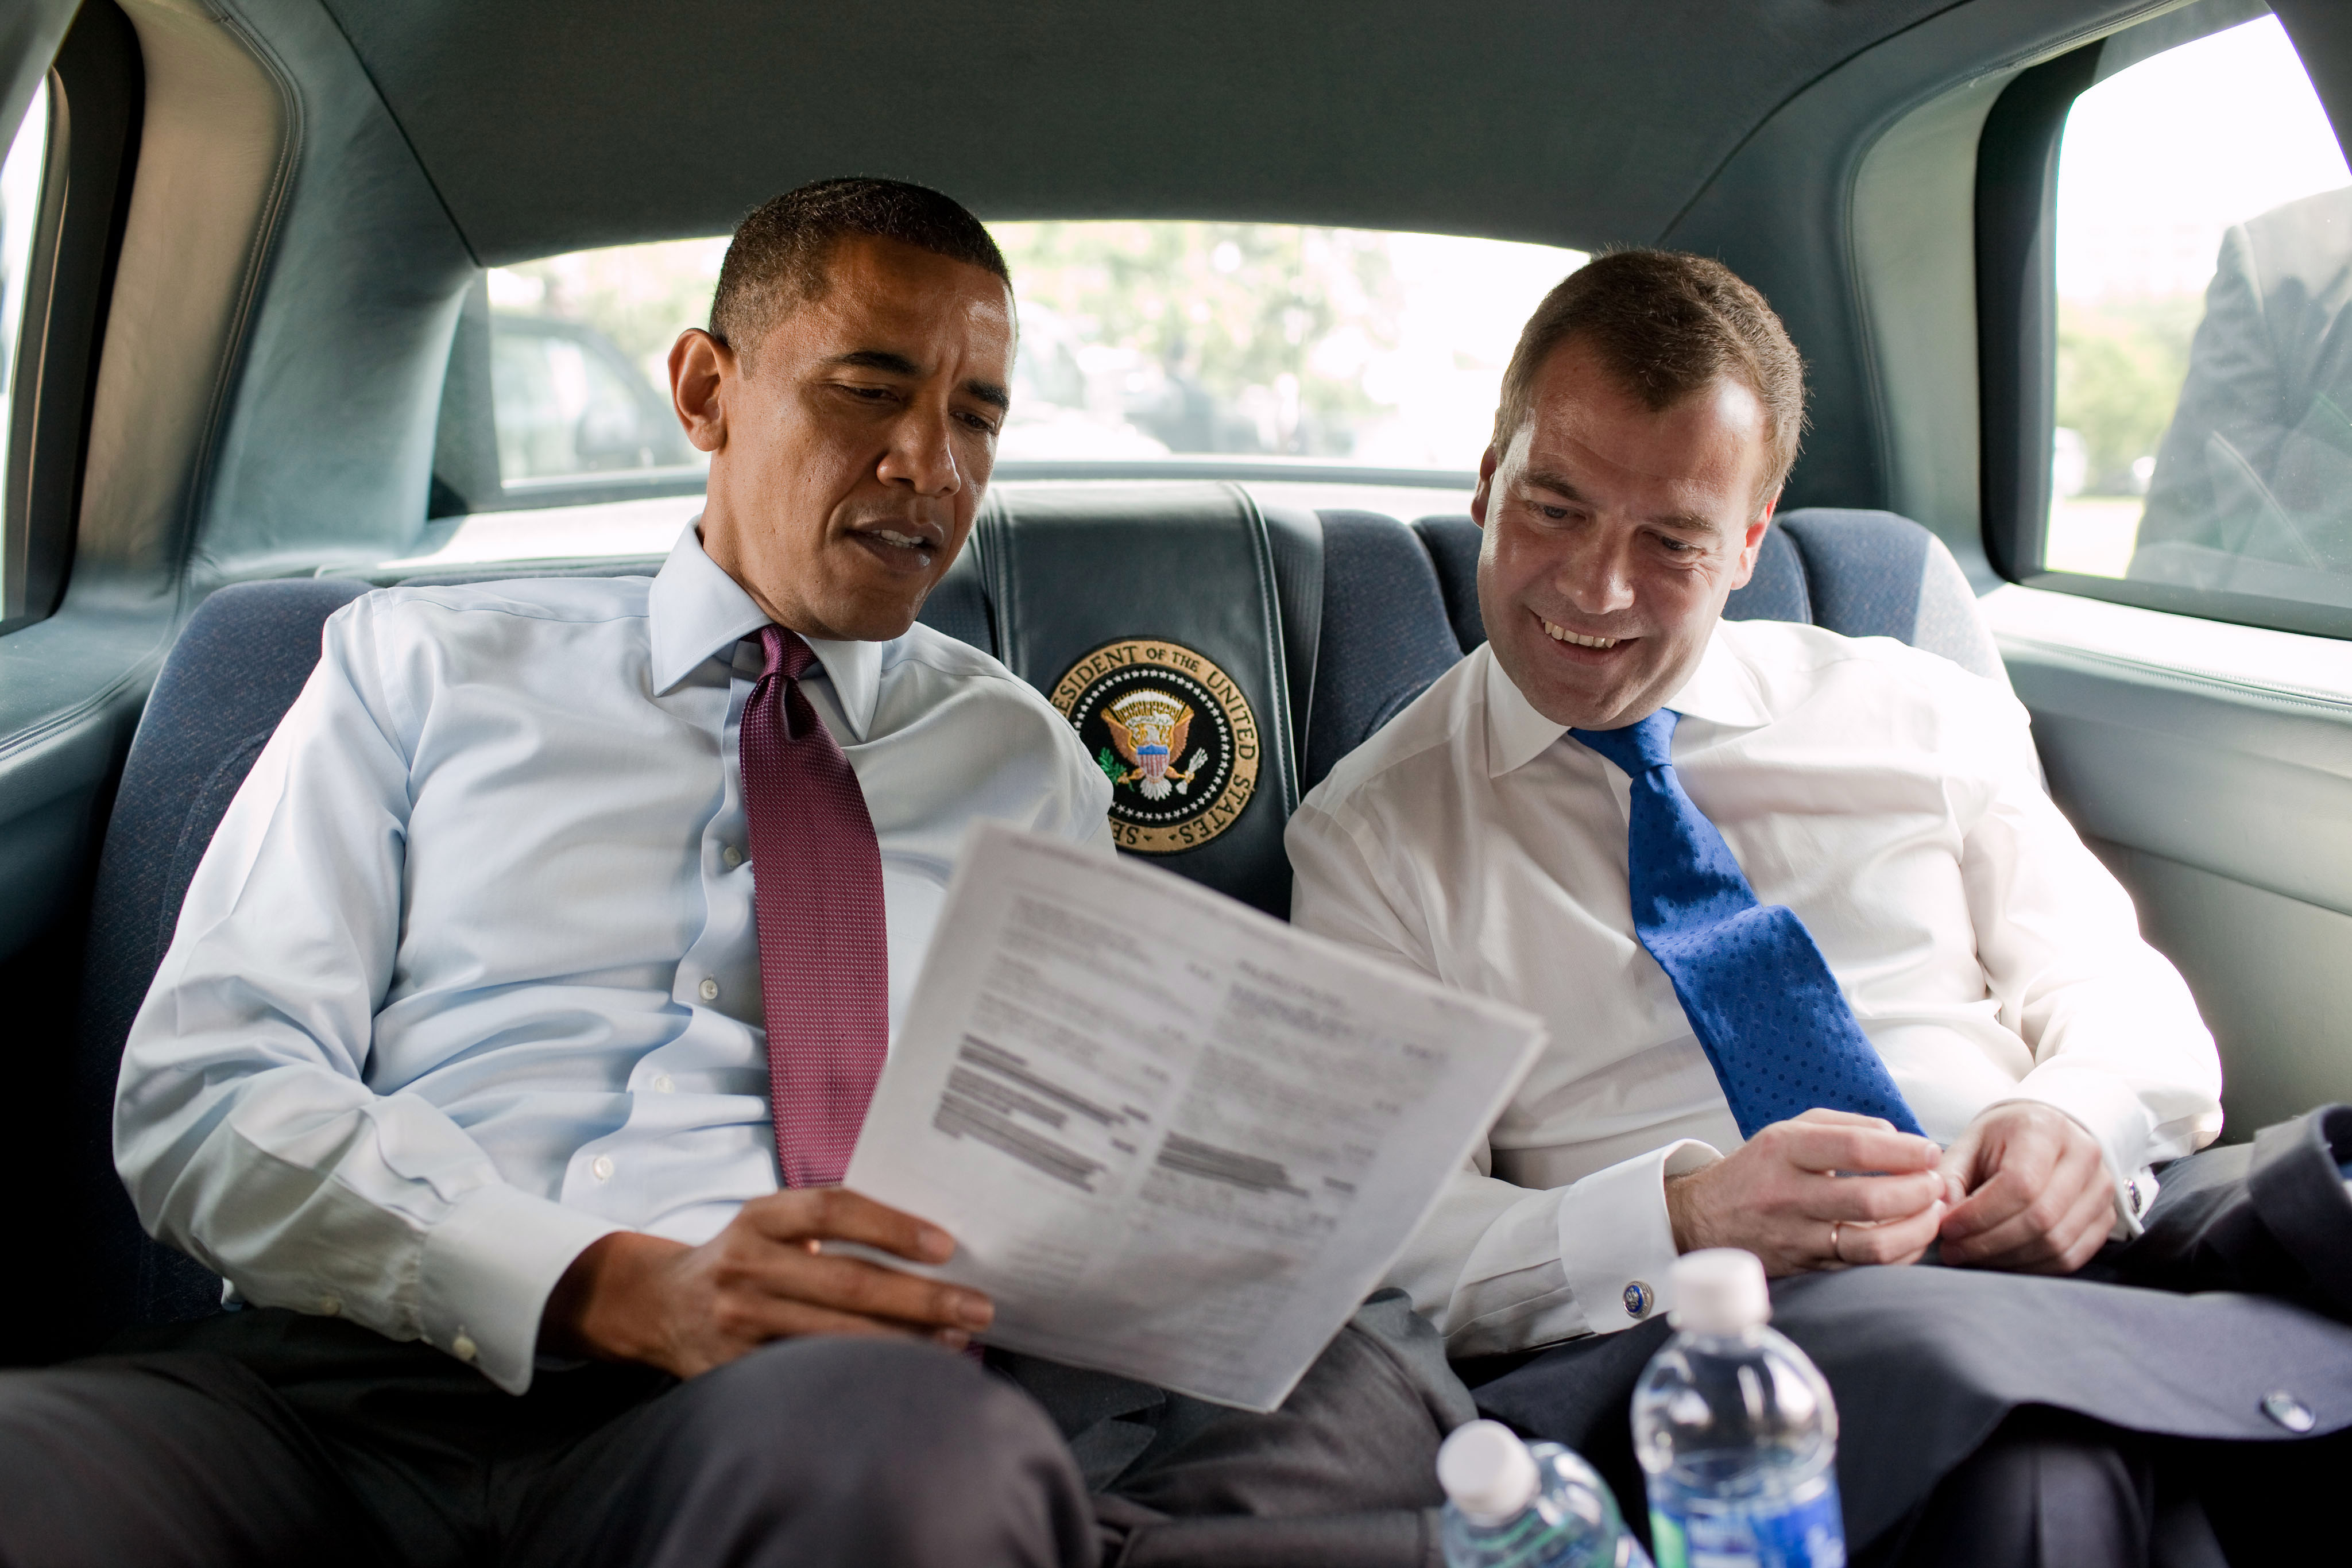 File:Obama and Medvedev look at the menu.jpg - Wikimedia Commons